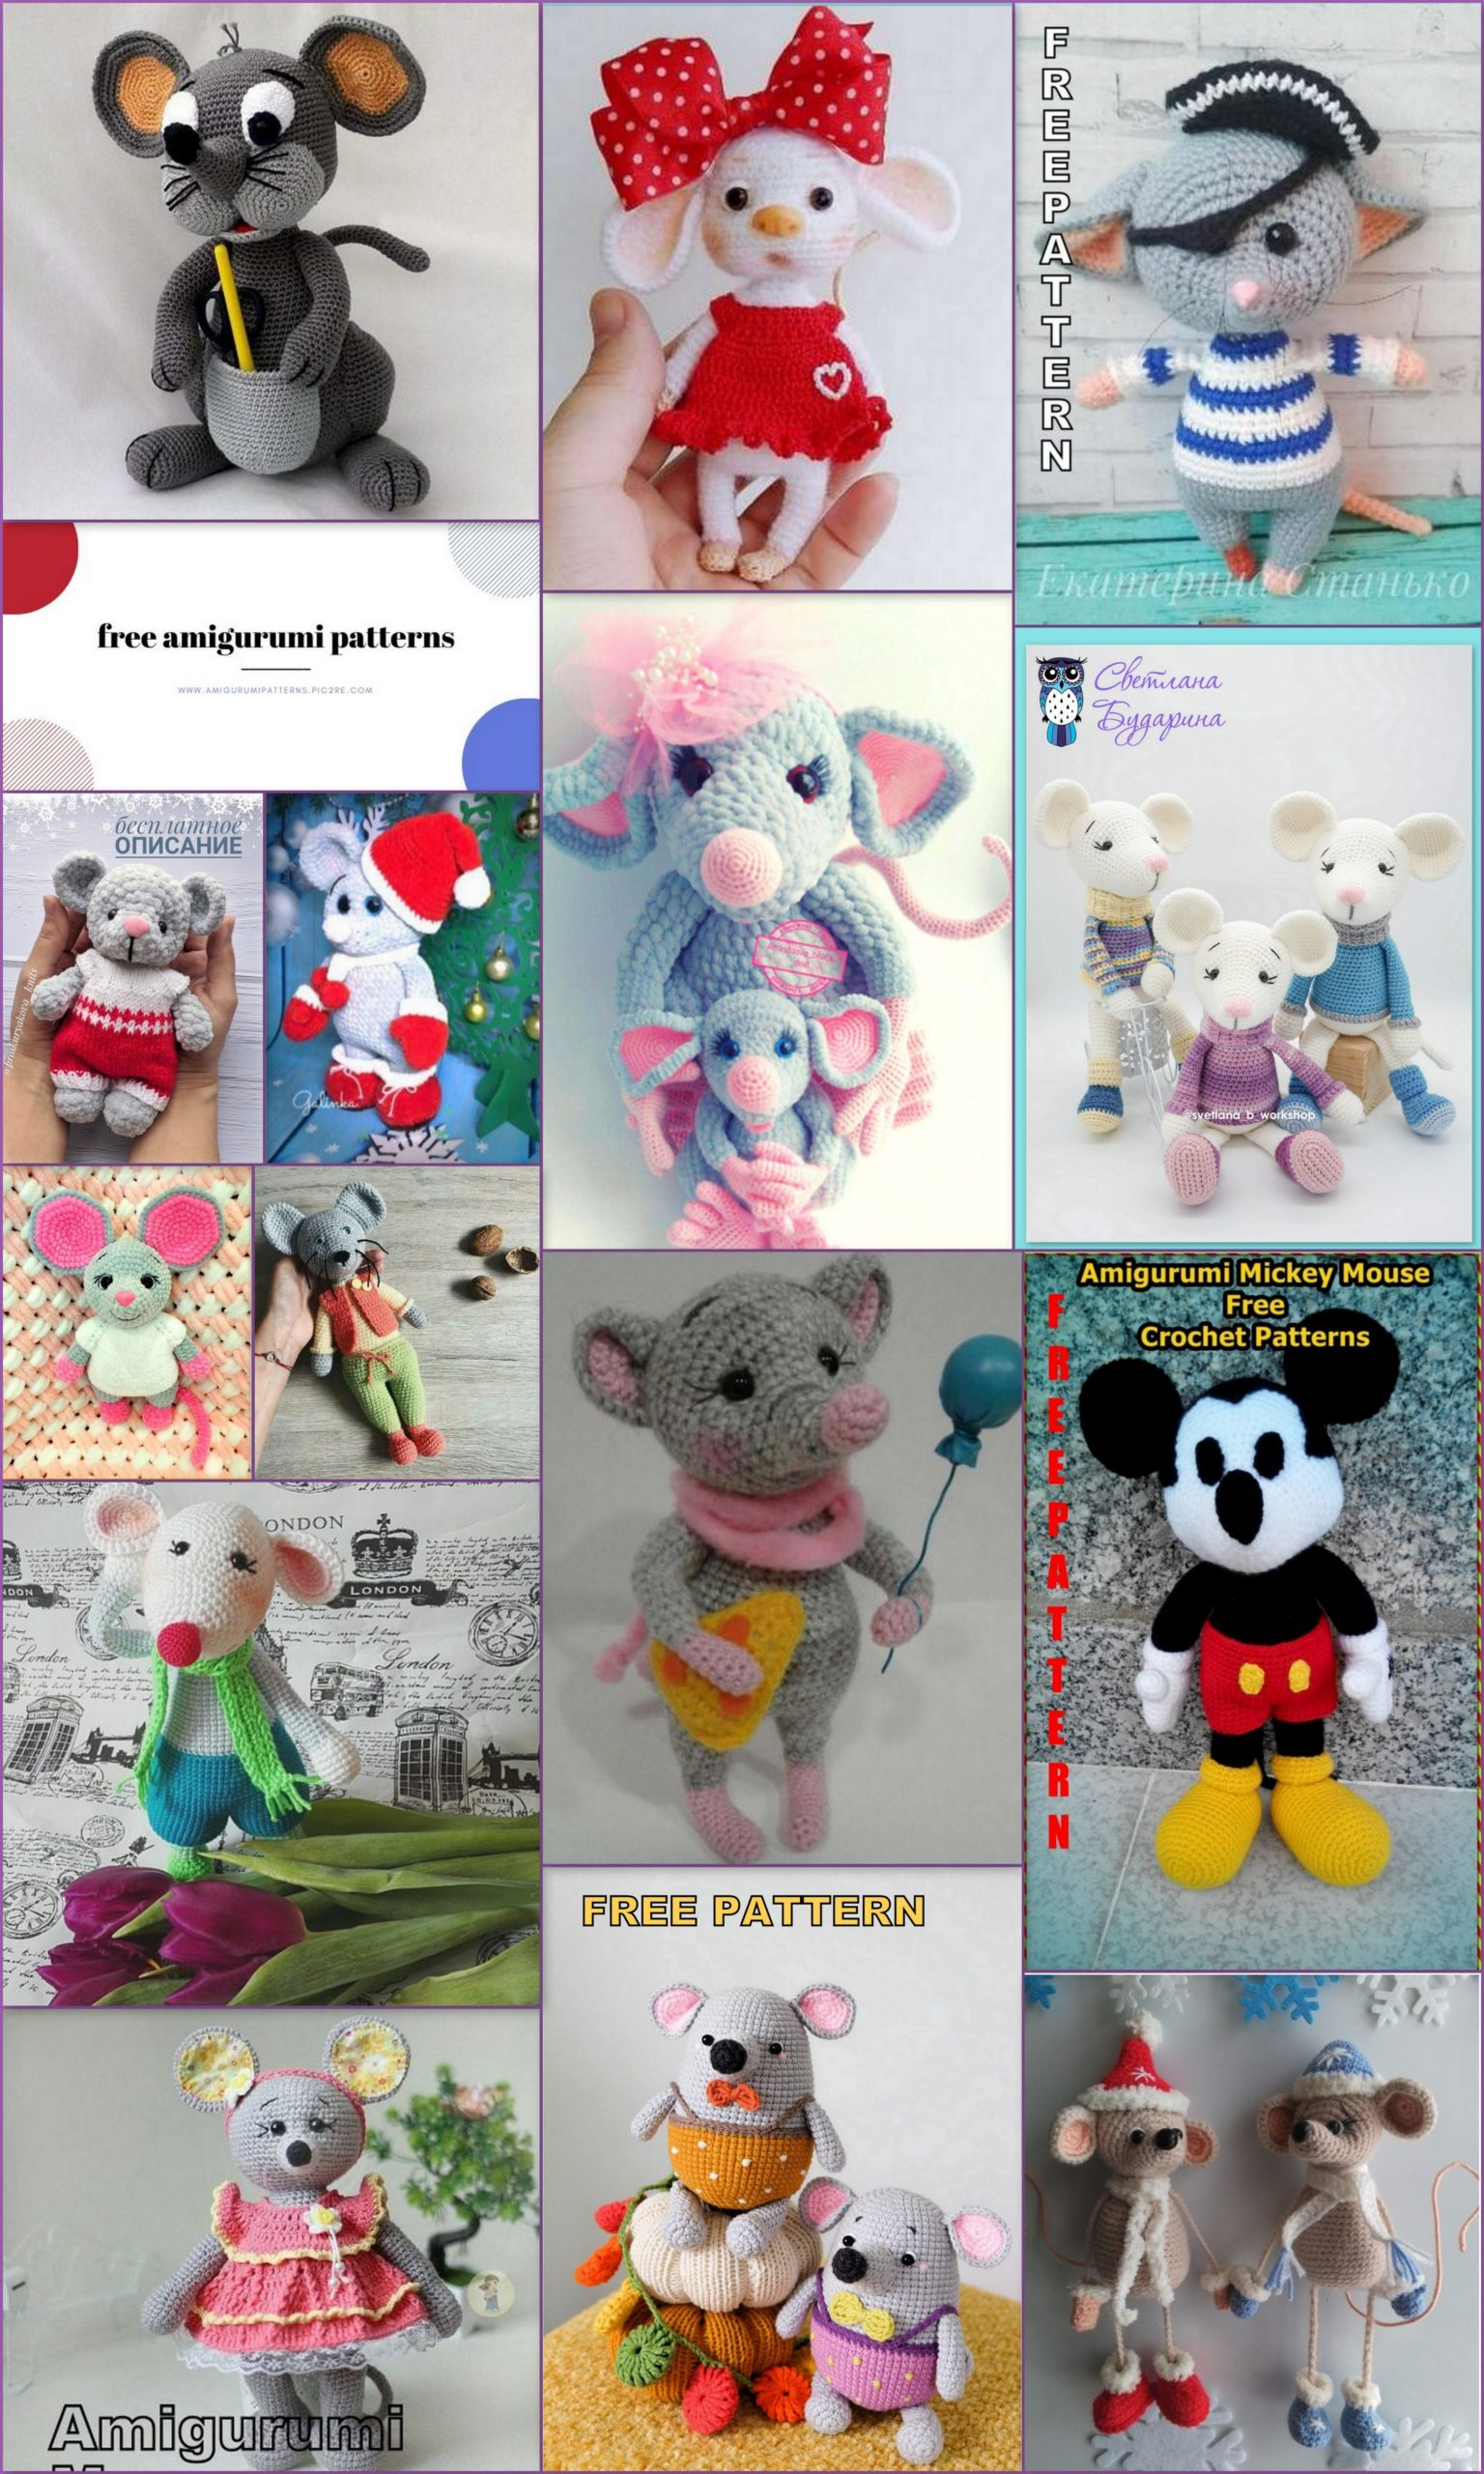 Amigurumi 15 Best Mouse Free Crochet Pattern in 2020 (With images ... | 2560x1536